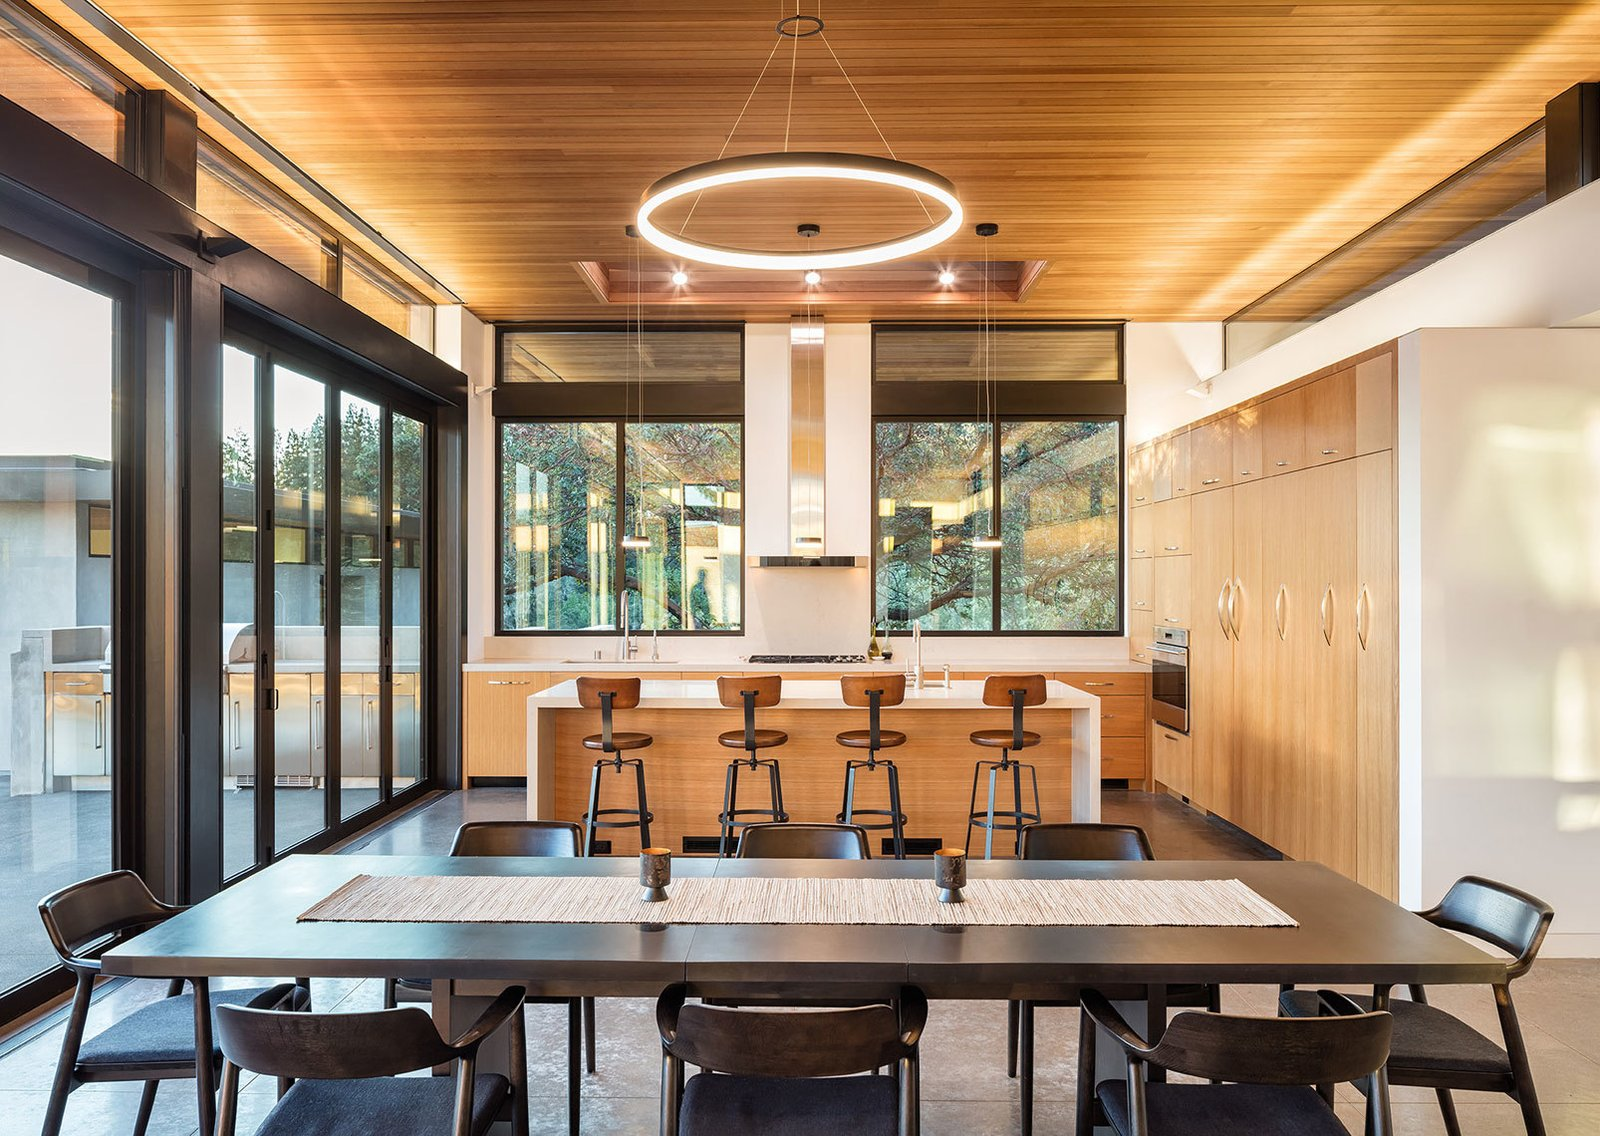 Tagged: Table, Chair, Ceiling Lighting, Stools, Recessed Lighting, Kitchen, Concrete Floor, Wood Cabinet, Engineered Quartz Counter, Refrigerator, Wall Oven, Cooktops, Dishwasher, Undermount Sink, and Range Hood.  Dry Creek by John Maniscalco Architecture